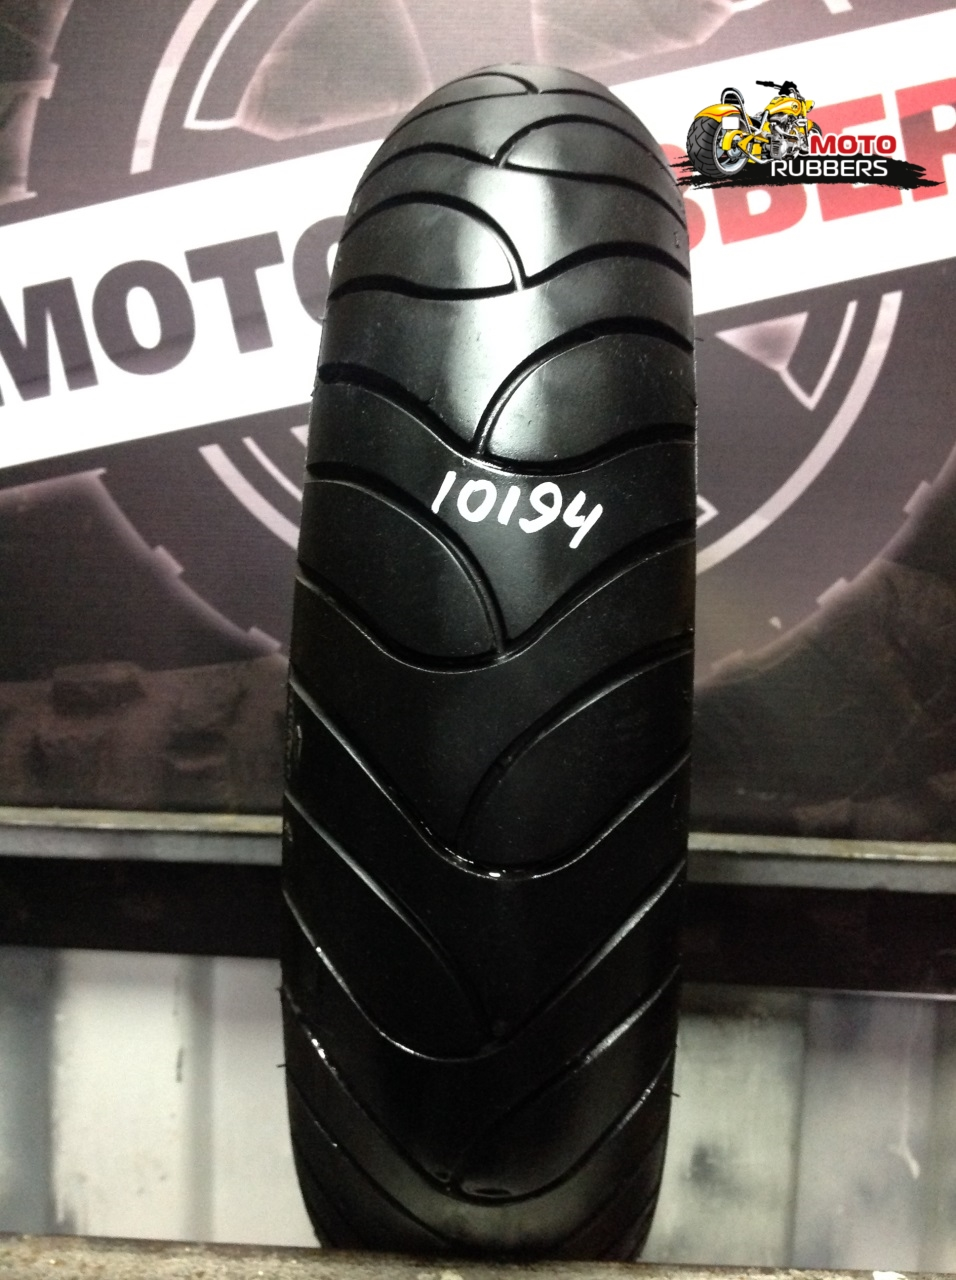 120/60 R17 Michelin pilot road